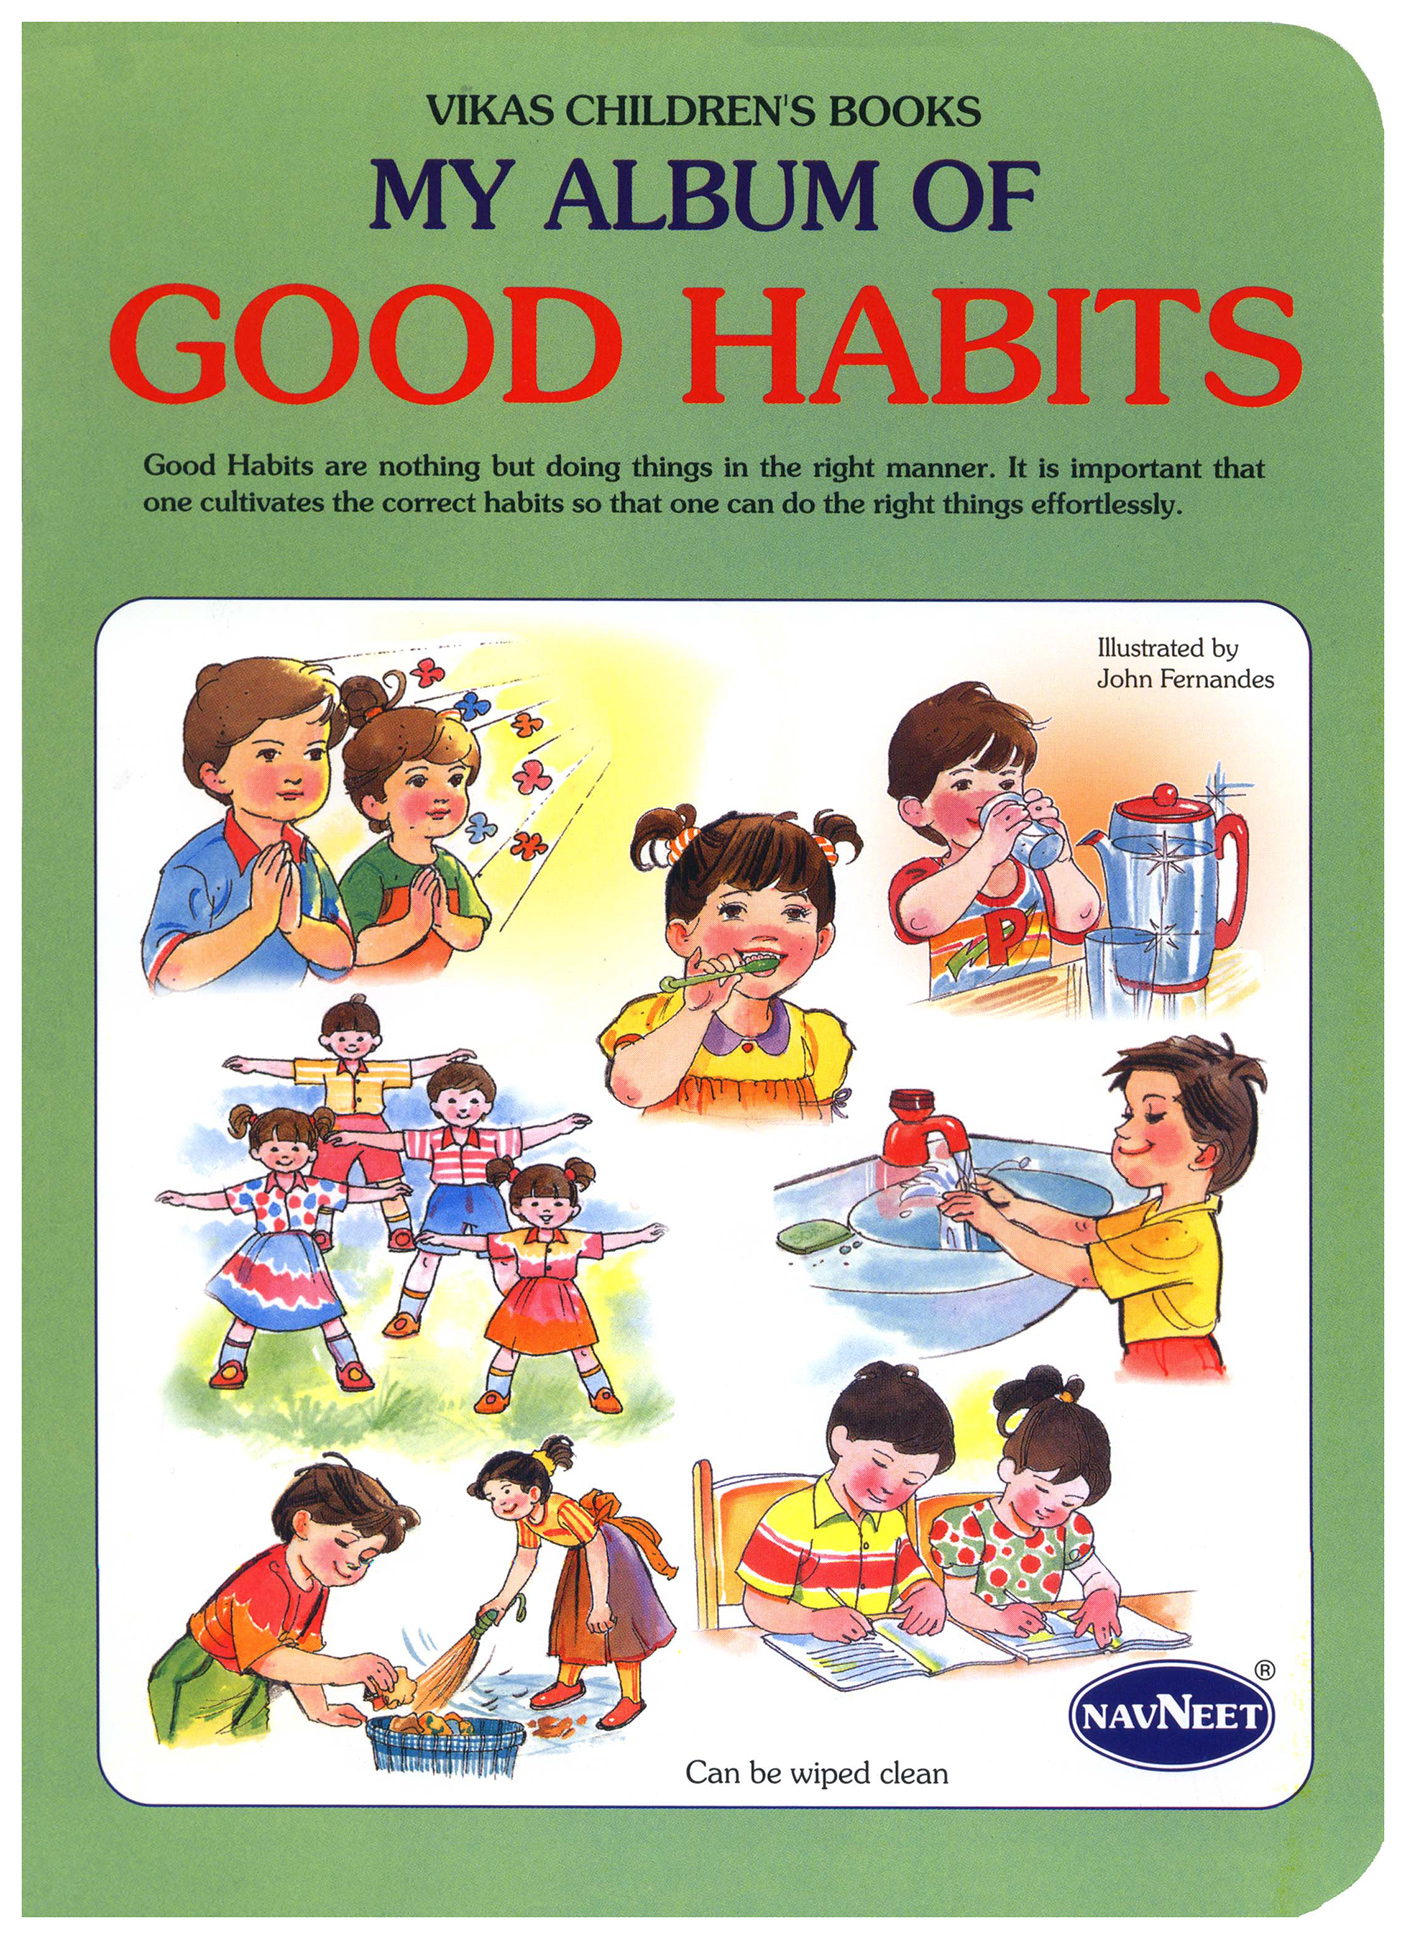 hindi good habits information Just like new habits are meant to replace old ones, only the new search results will surface in most cases if there is a habit you want to change, identify your habit loop and actively decide on a new response to the trigger that produces a reward that's at least as good as what you're getting now.